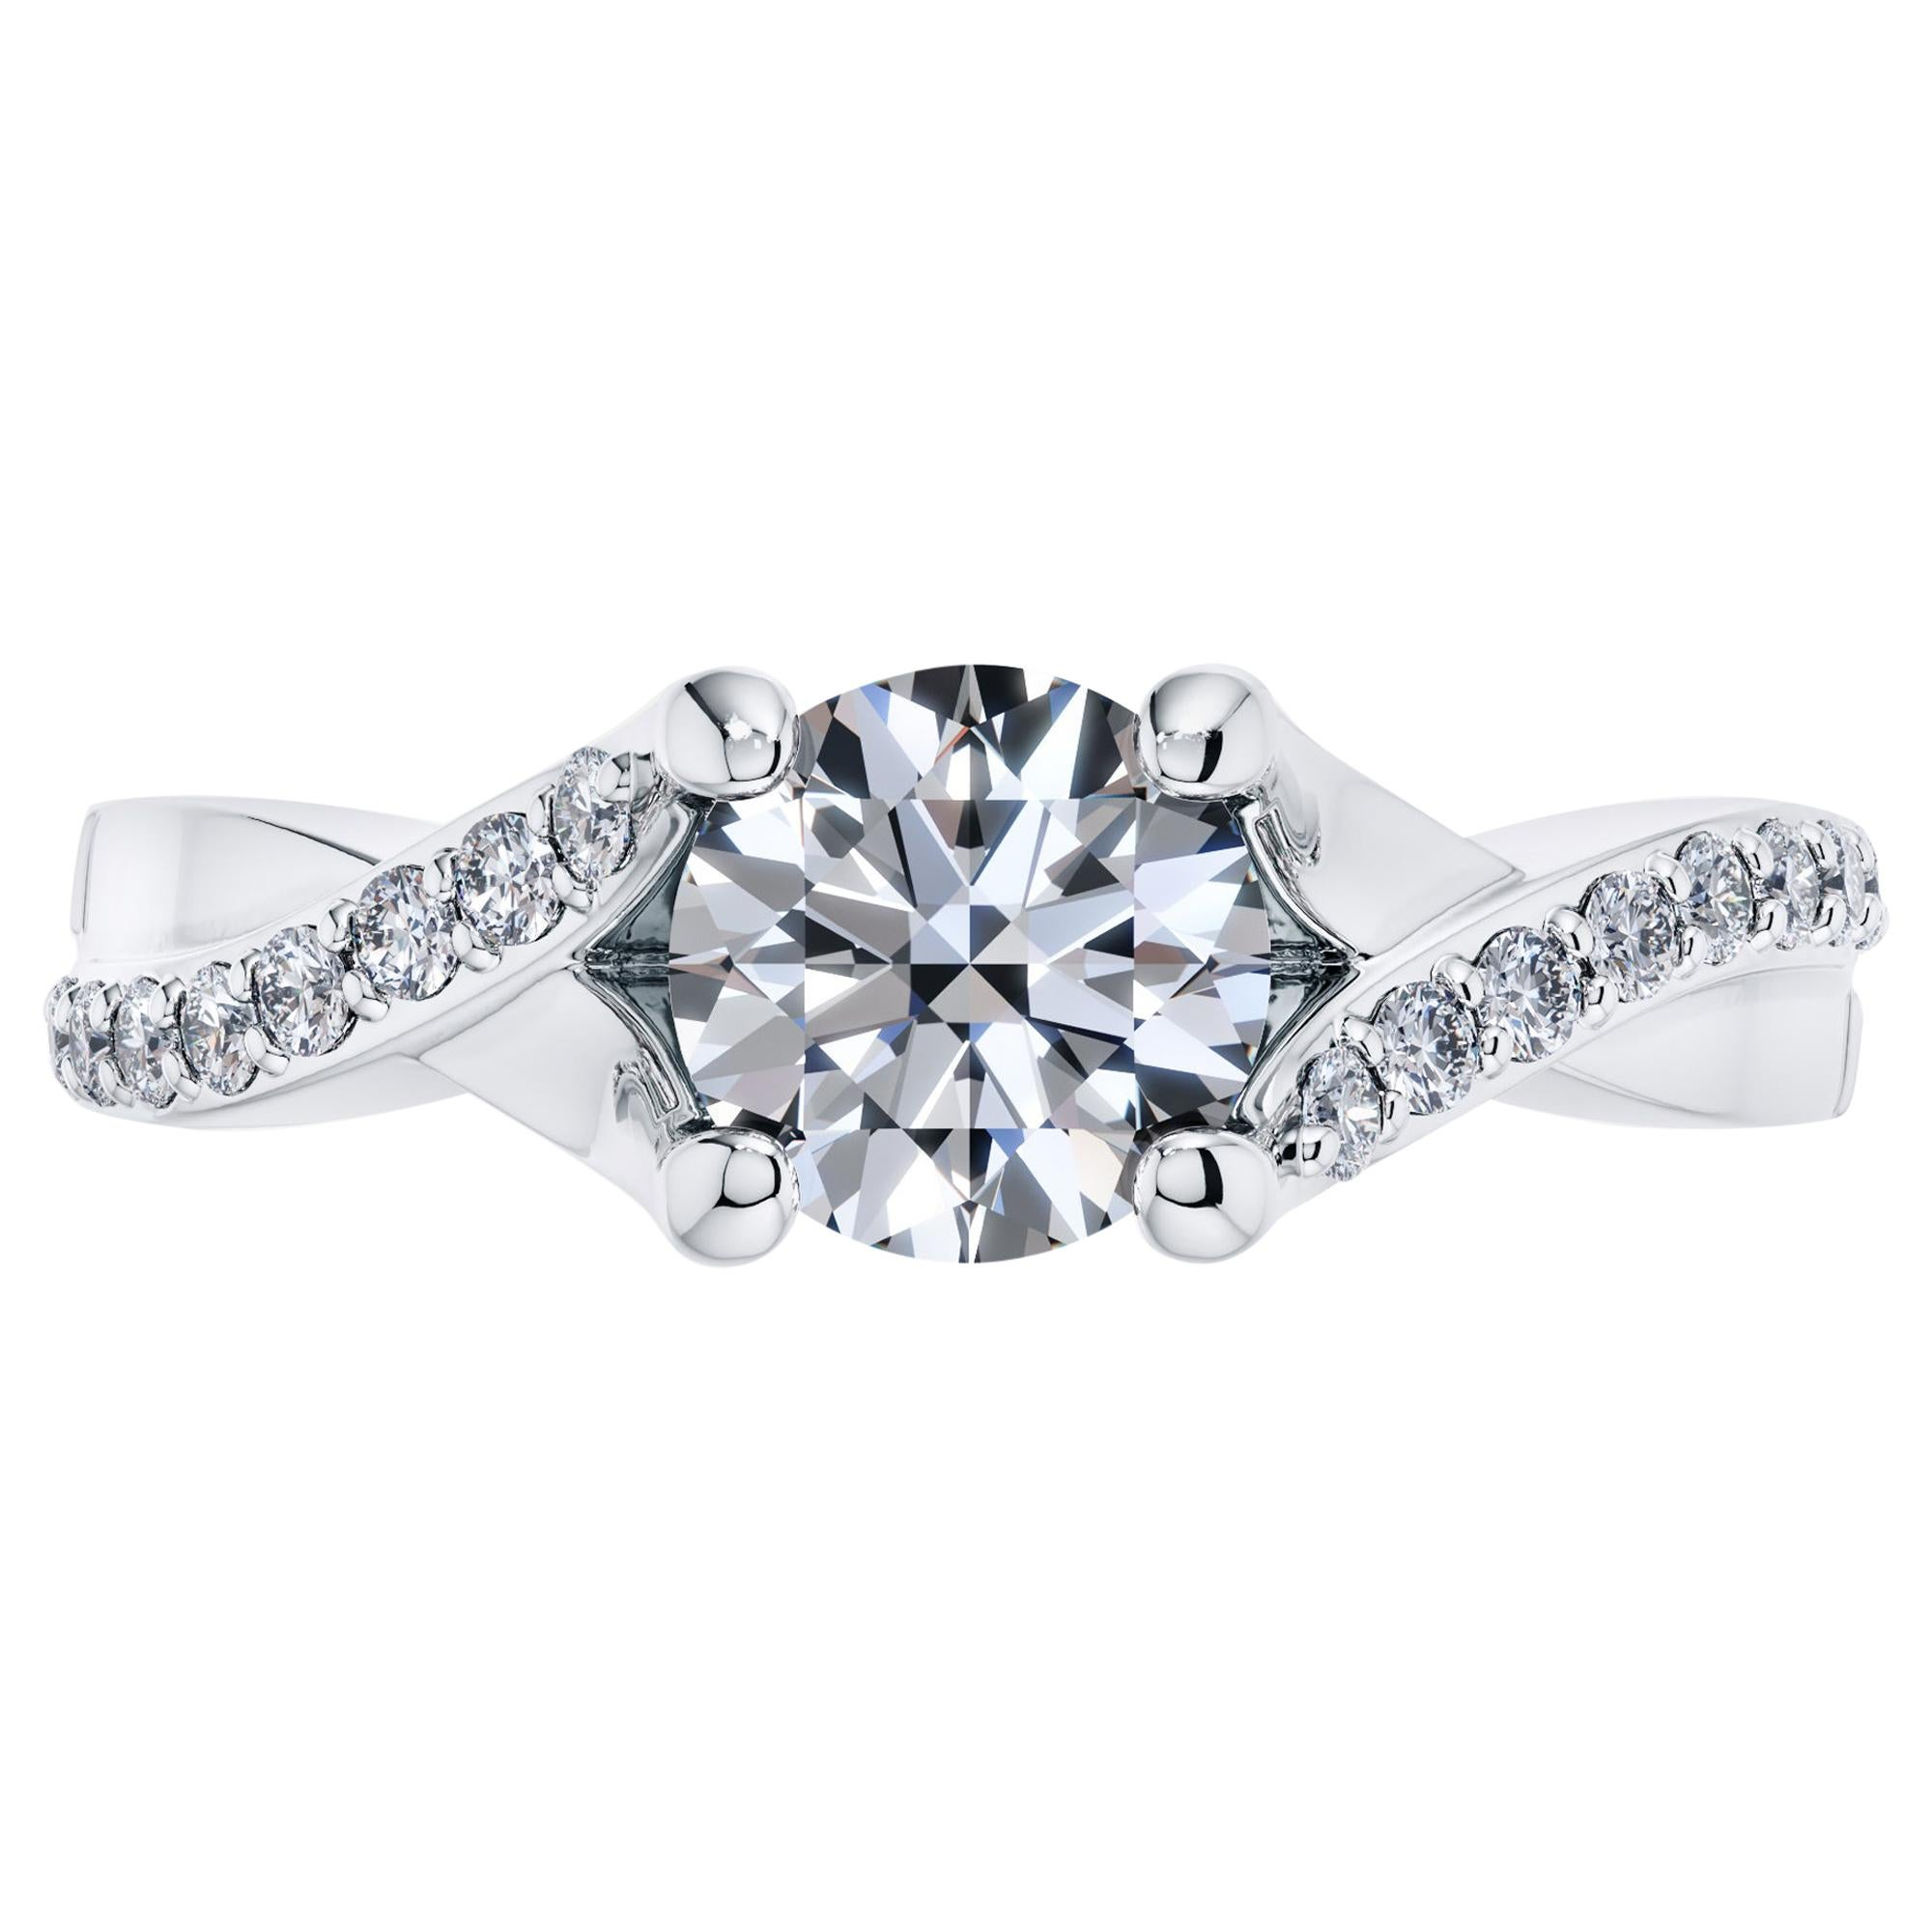 Platinum 0.40 Carat Round Diamond Twisted Love 4 Prong Bespoke Engagement Ring